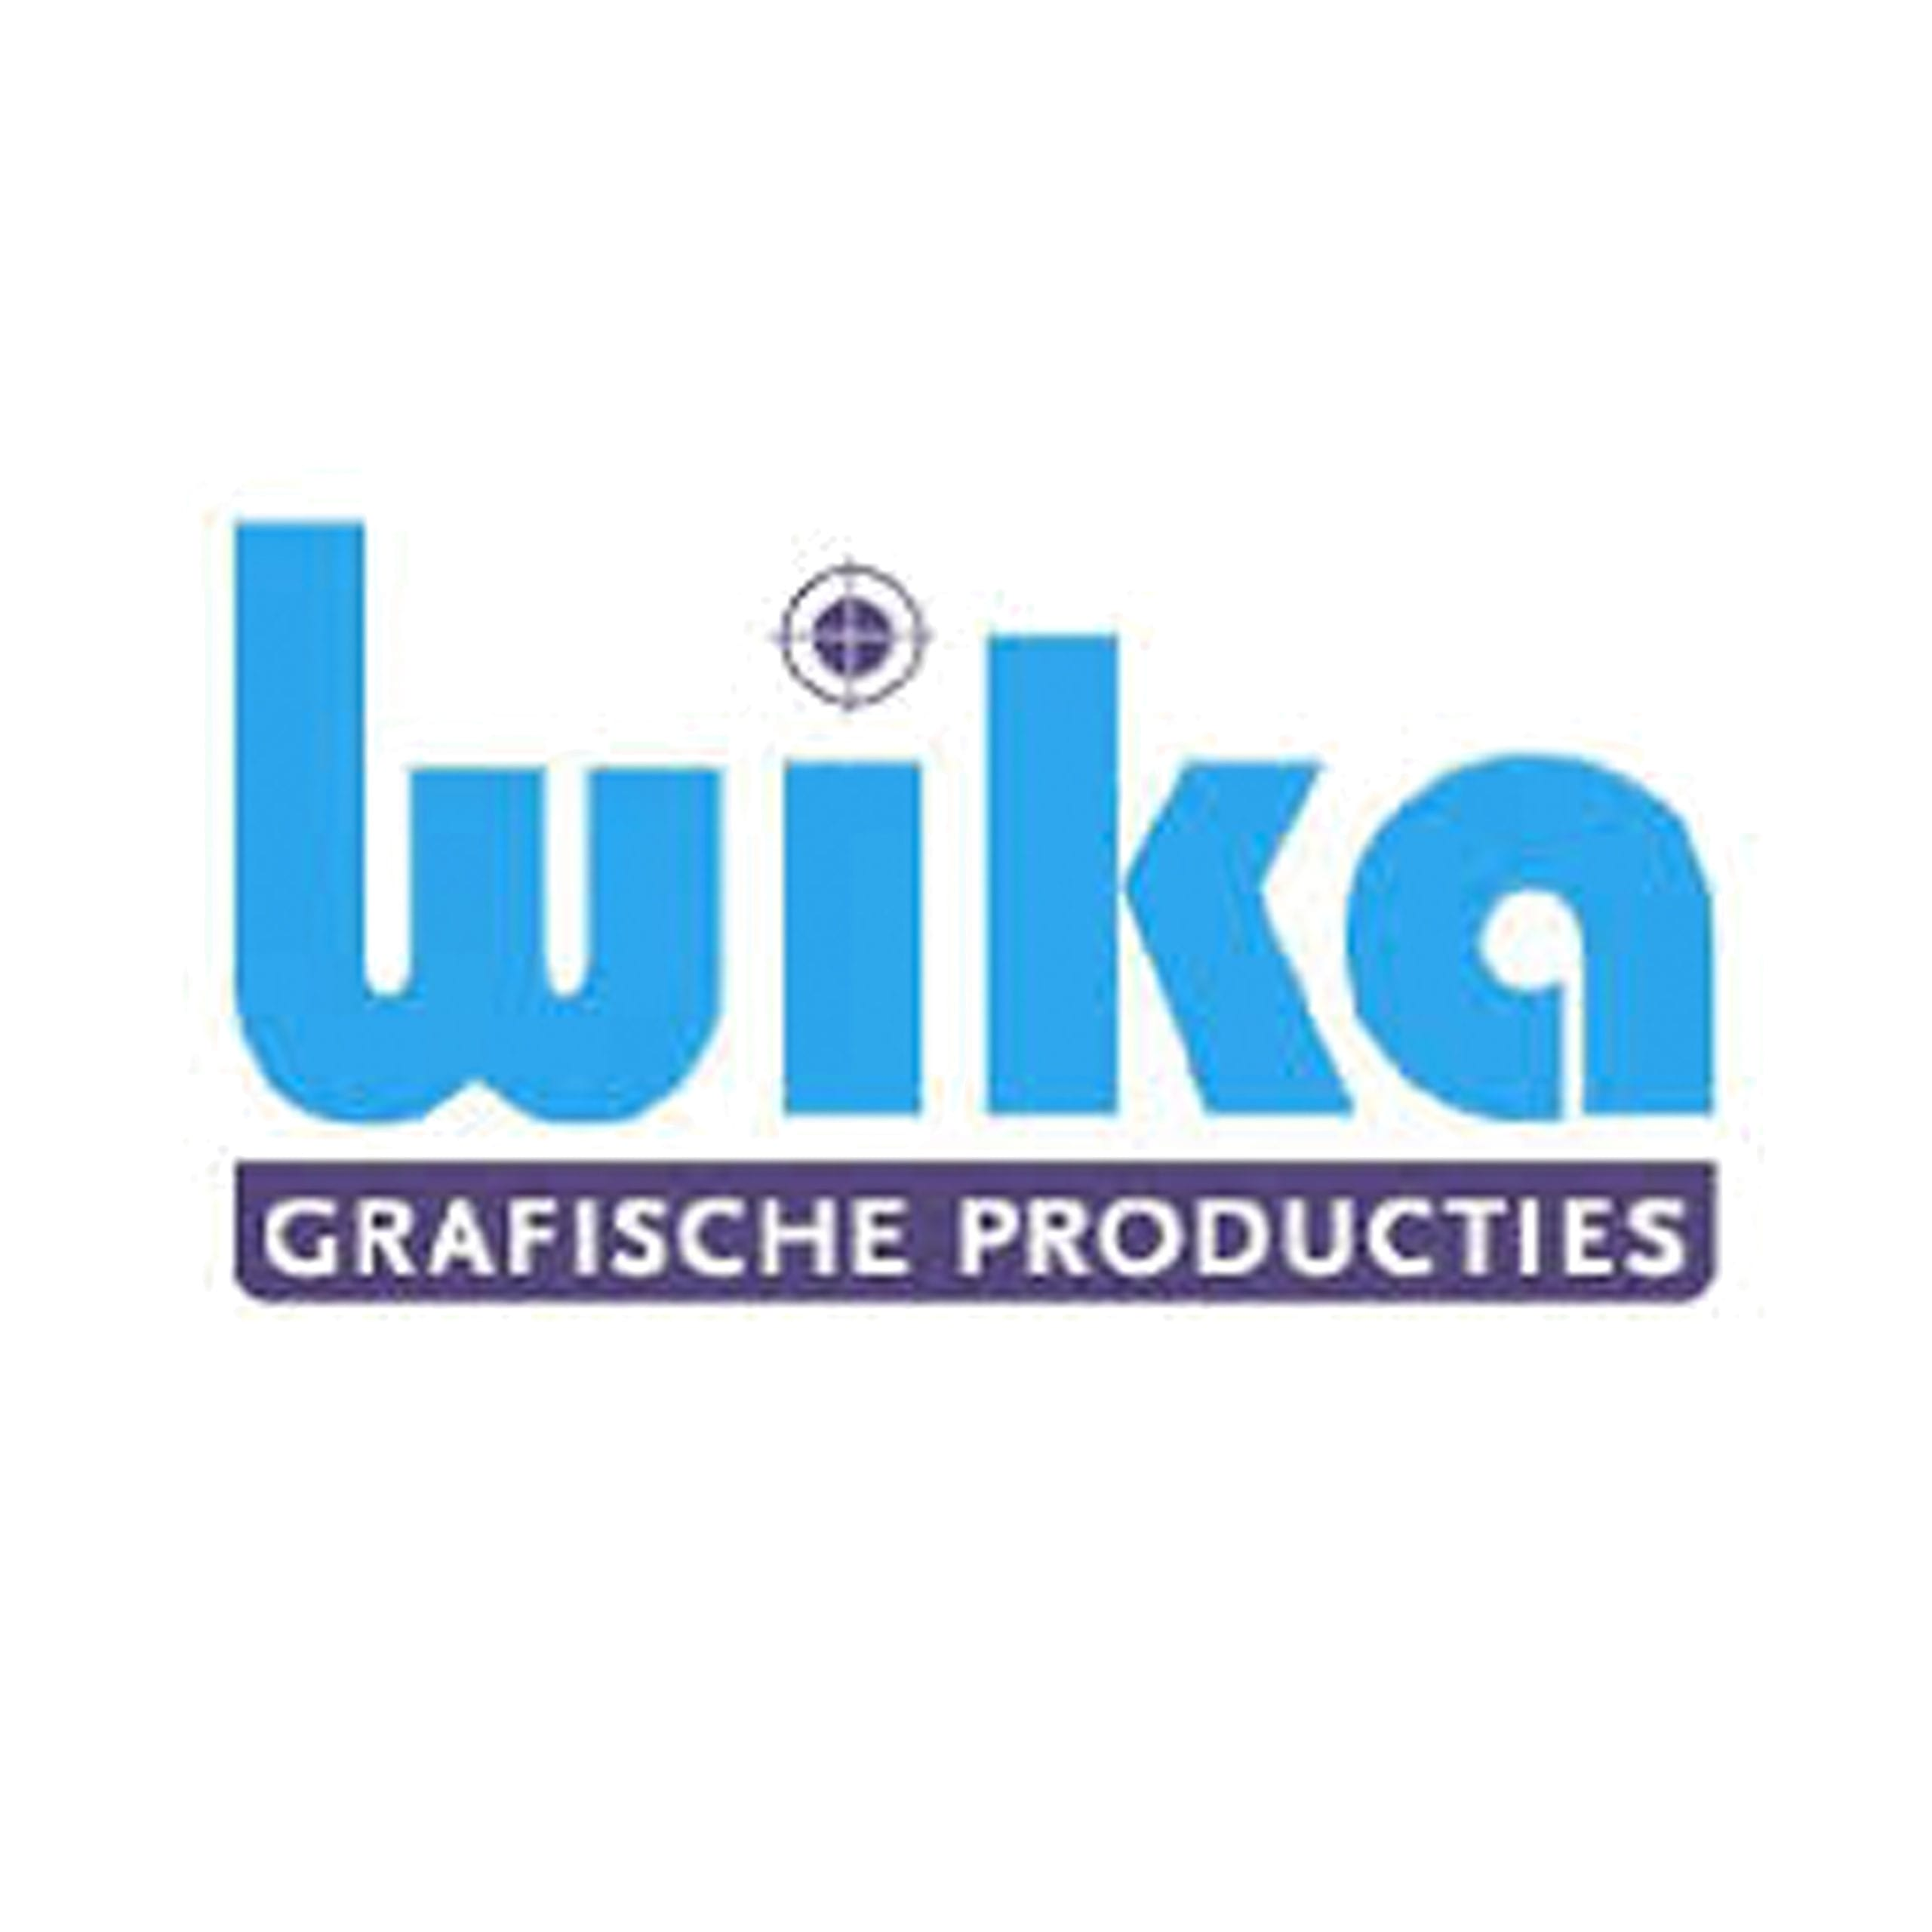 Wika - Privacy policy